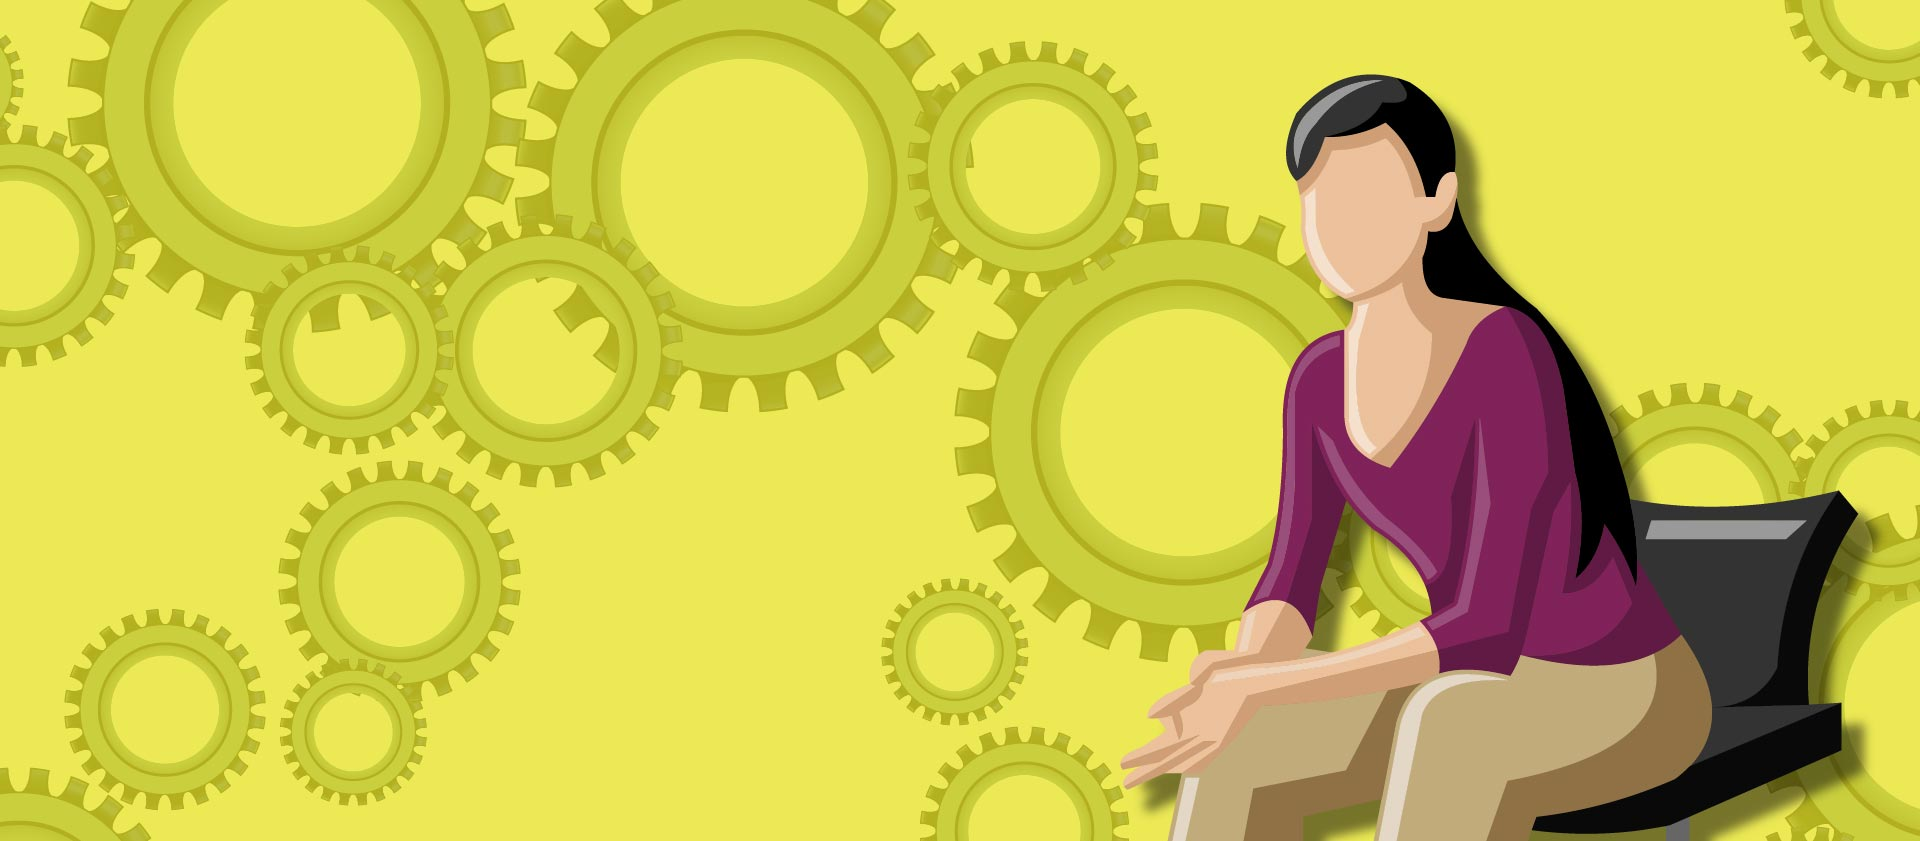 Graphic of IT woman sitting with gears in background